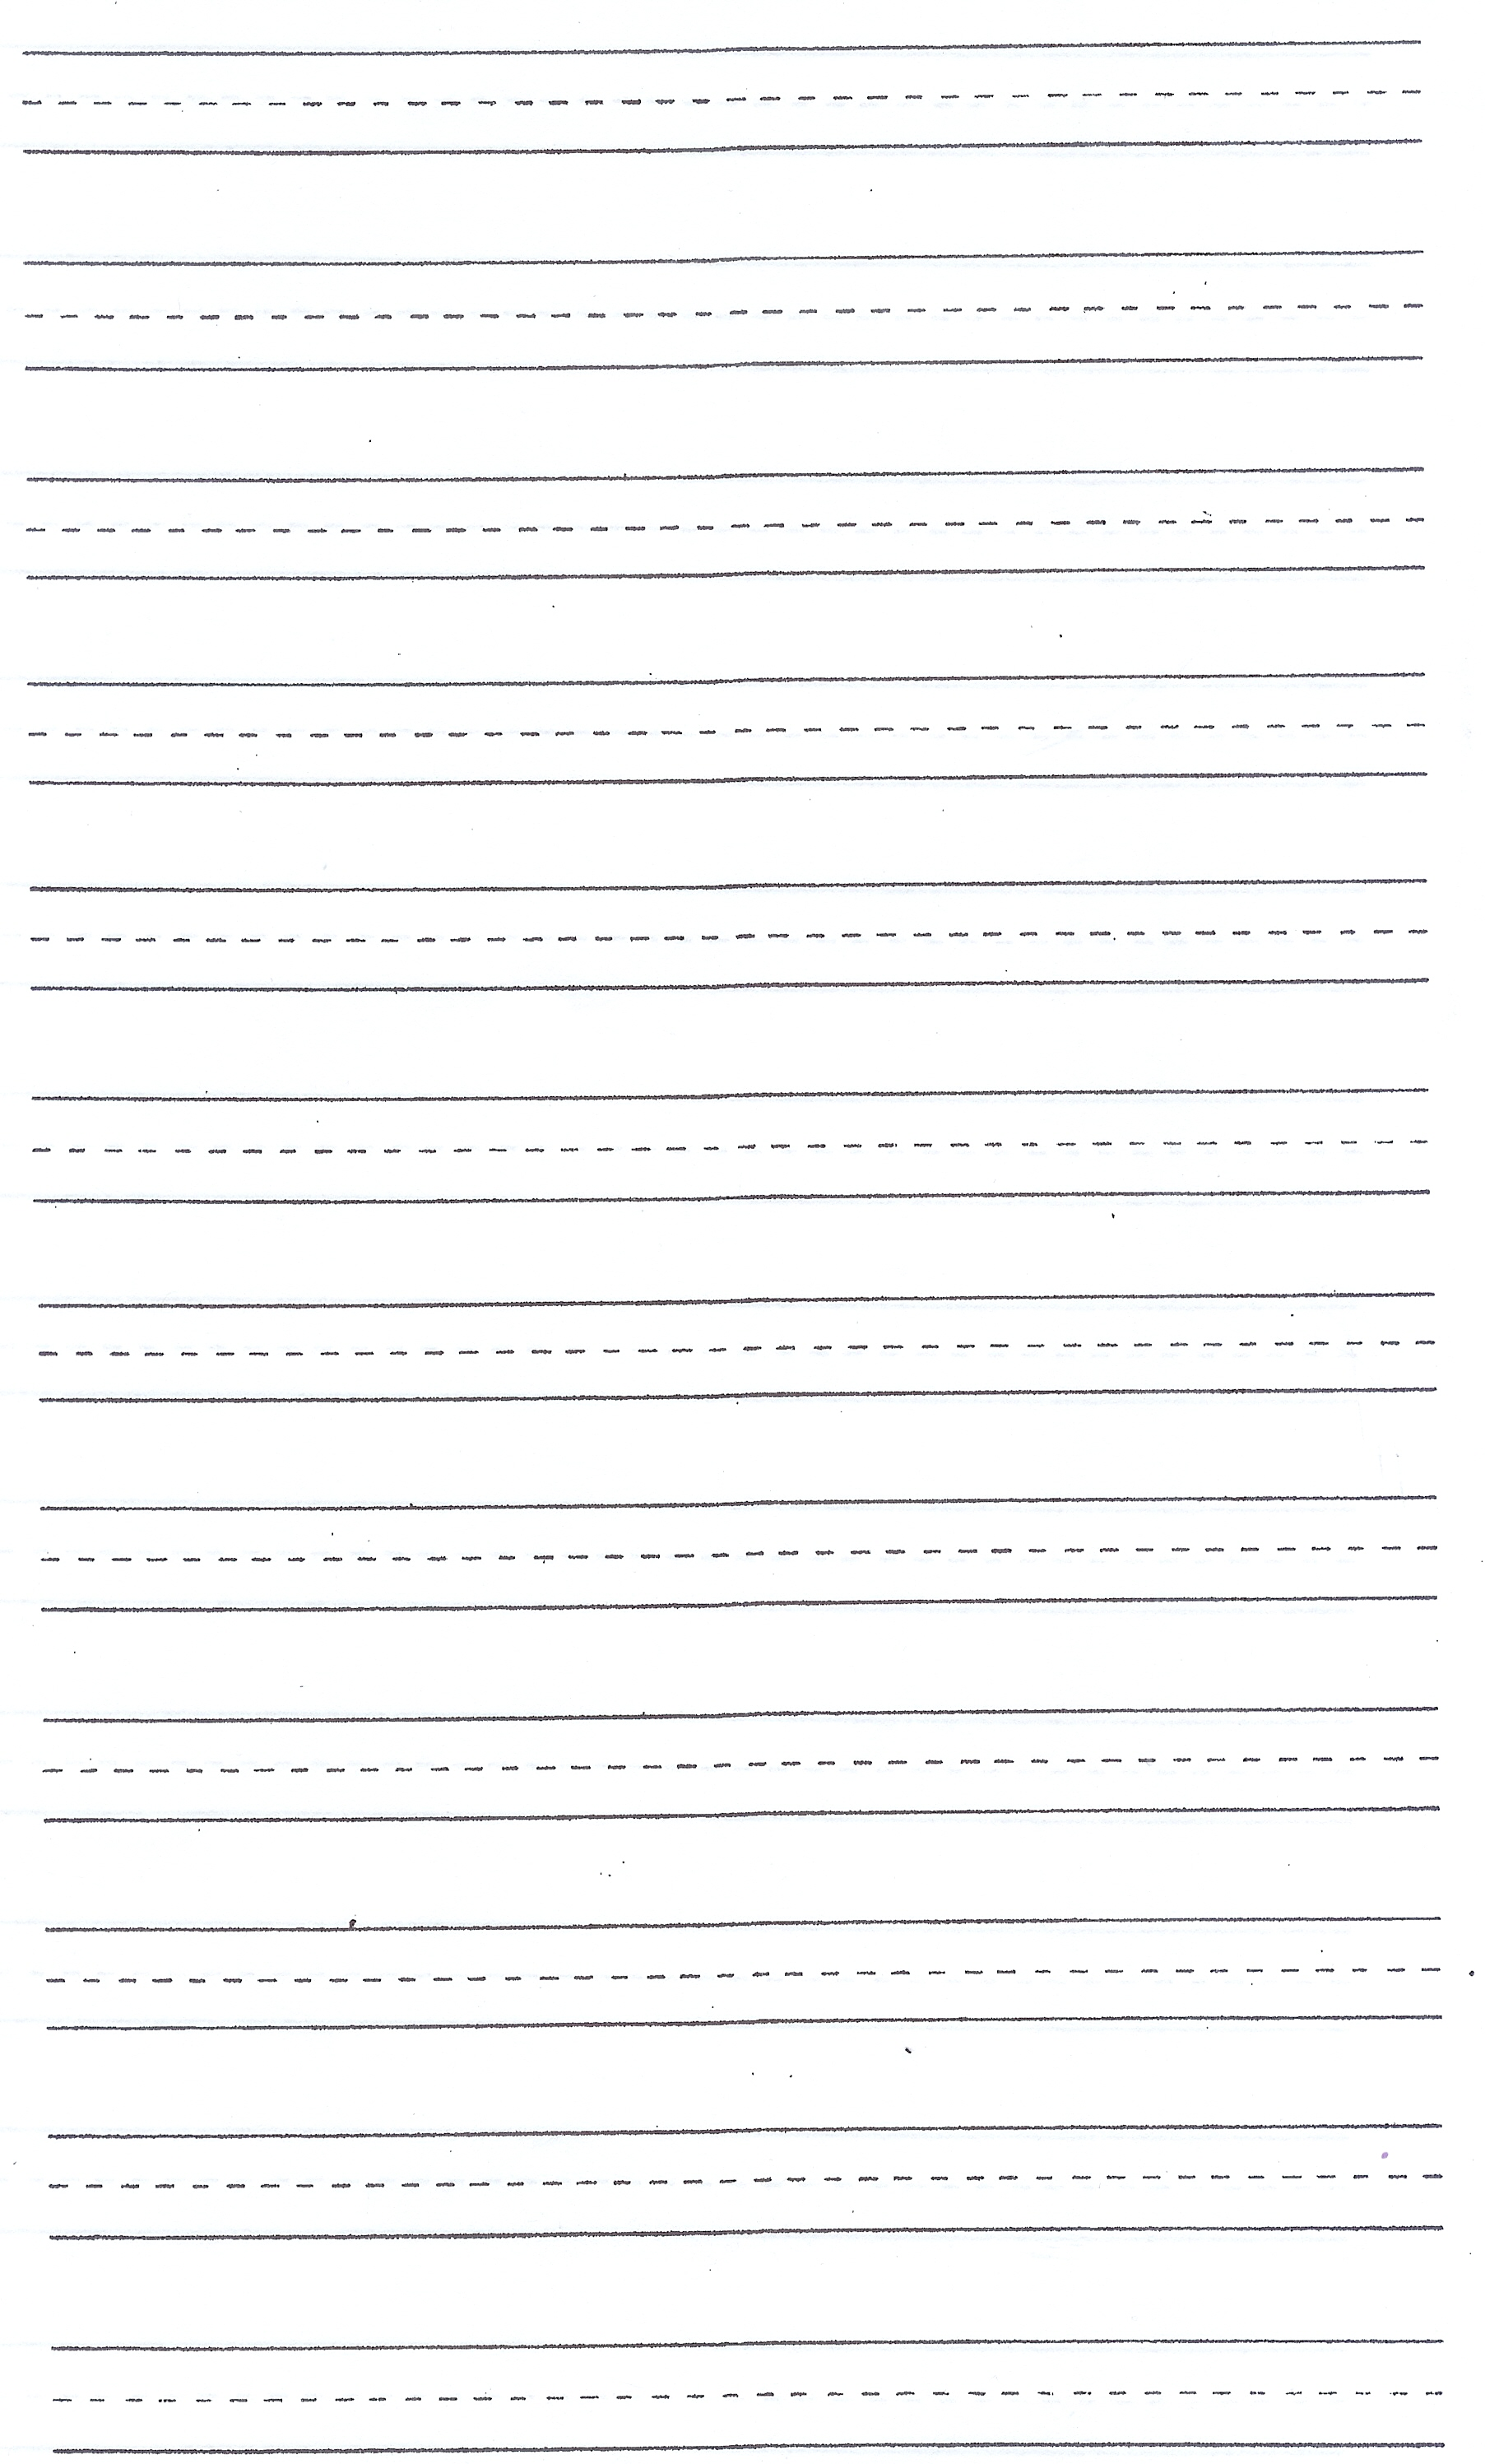 6 best images of first grade writing paper printable for Free printable lined paper template for kids